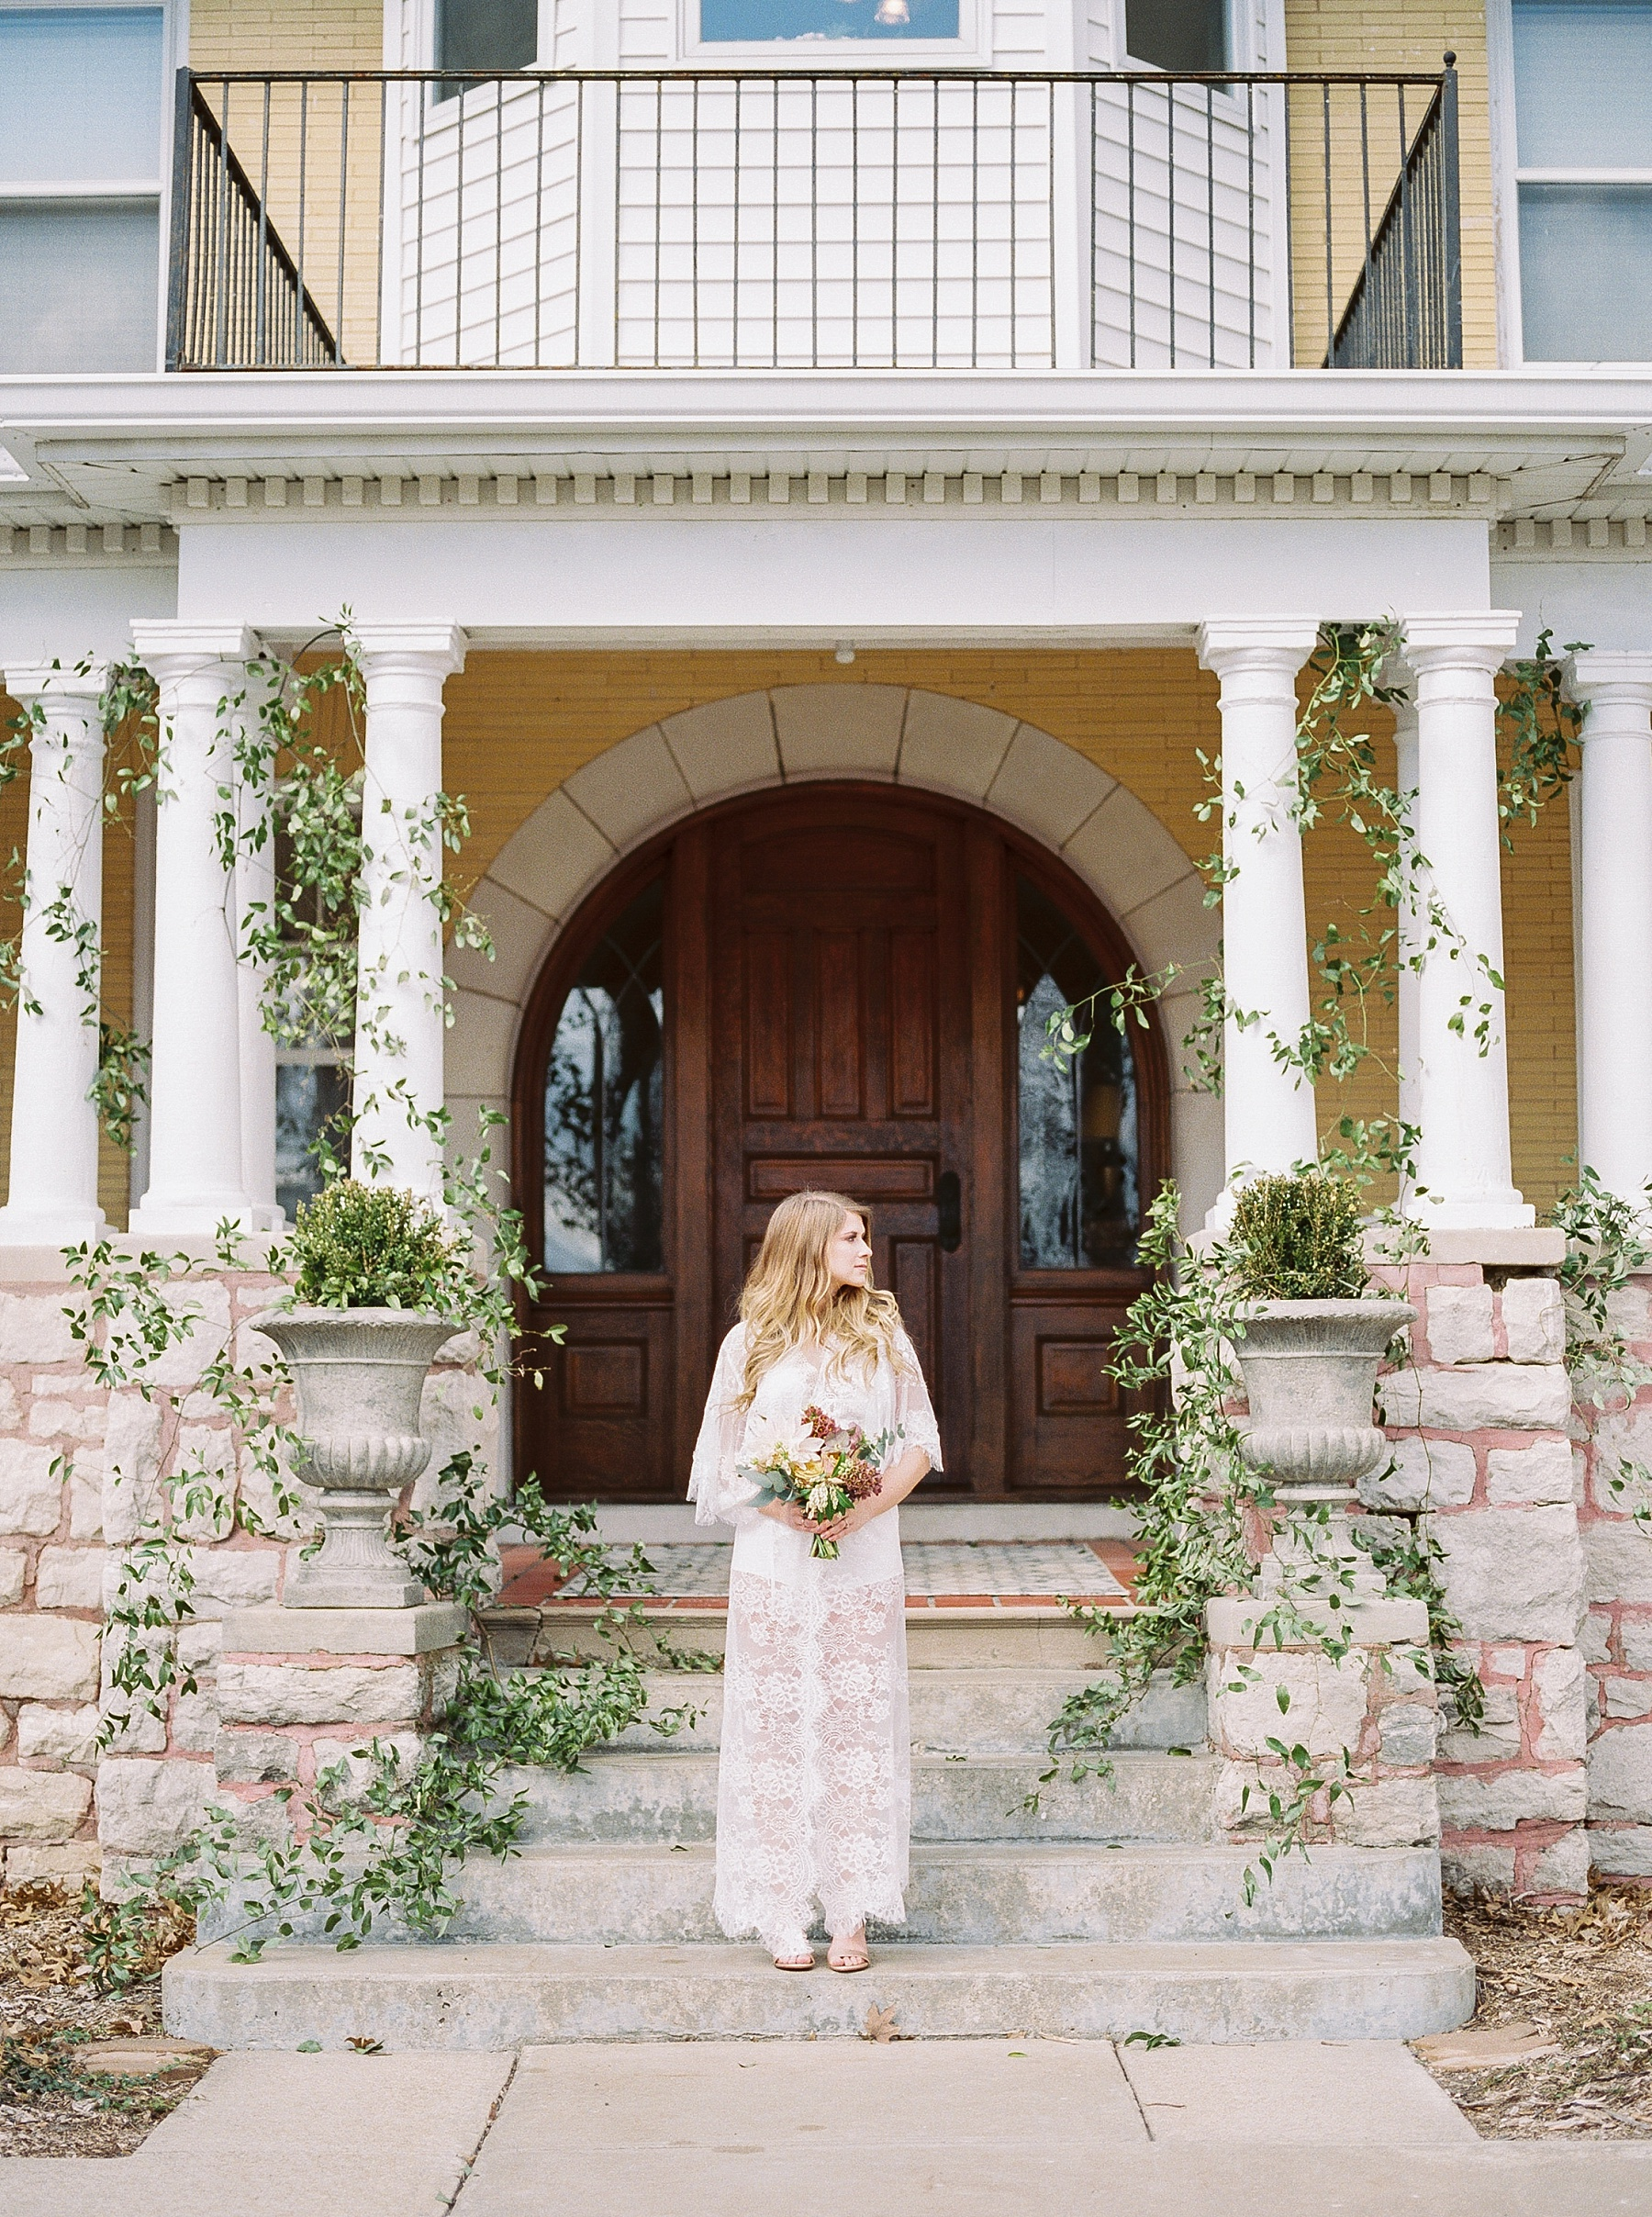 Natural, Intimate, and Organic Bridal Session on Steps of Century Old Bed and Breakfast by Kelsi Kliethermes Photography Best Missouri and Maui Wedding Photographer_0011.jpg